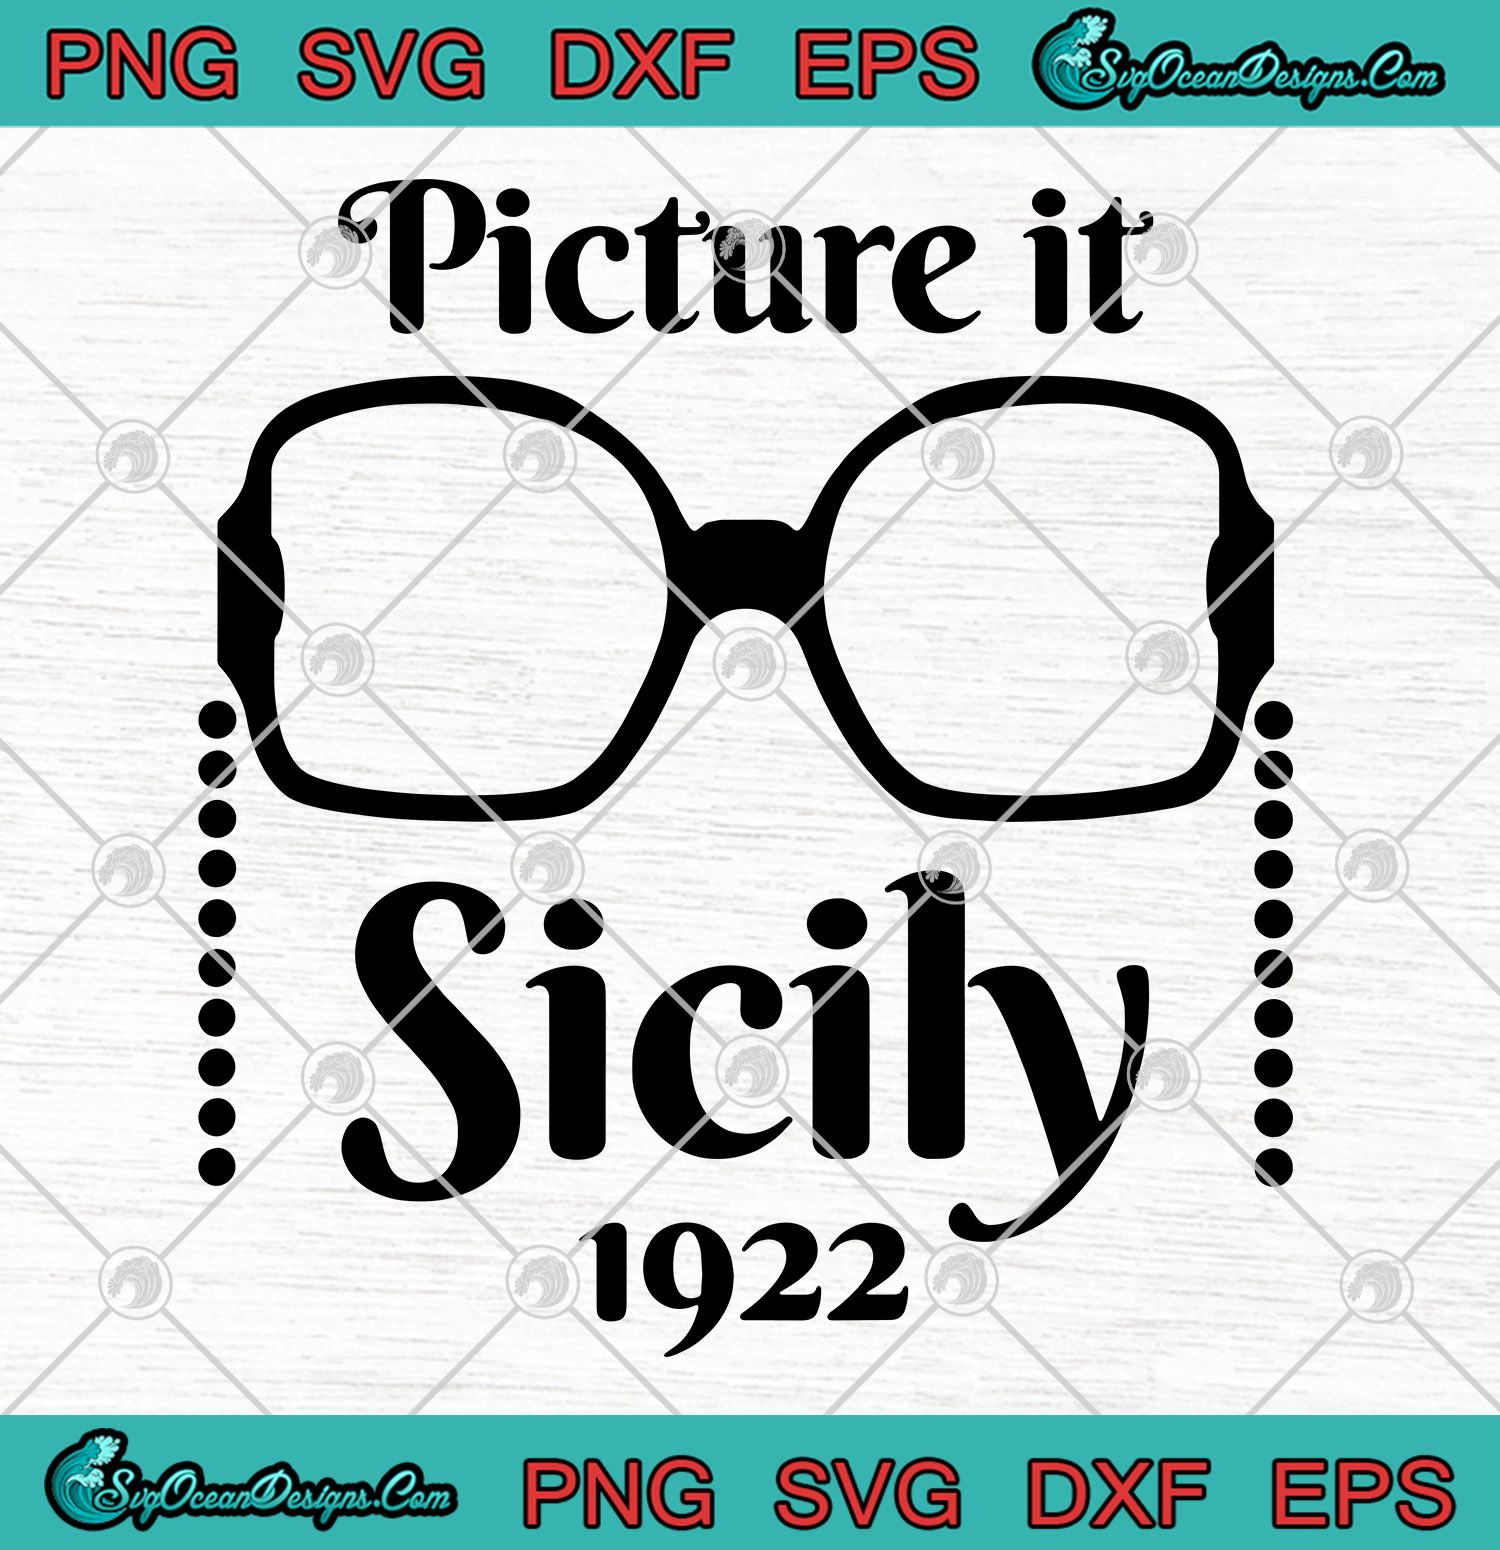 Picture it Sicily 1922 – Great Gift for Golden Girls Friends SVG PNG EPS DXF Cricut silhouette cameo 3